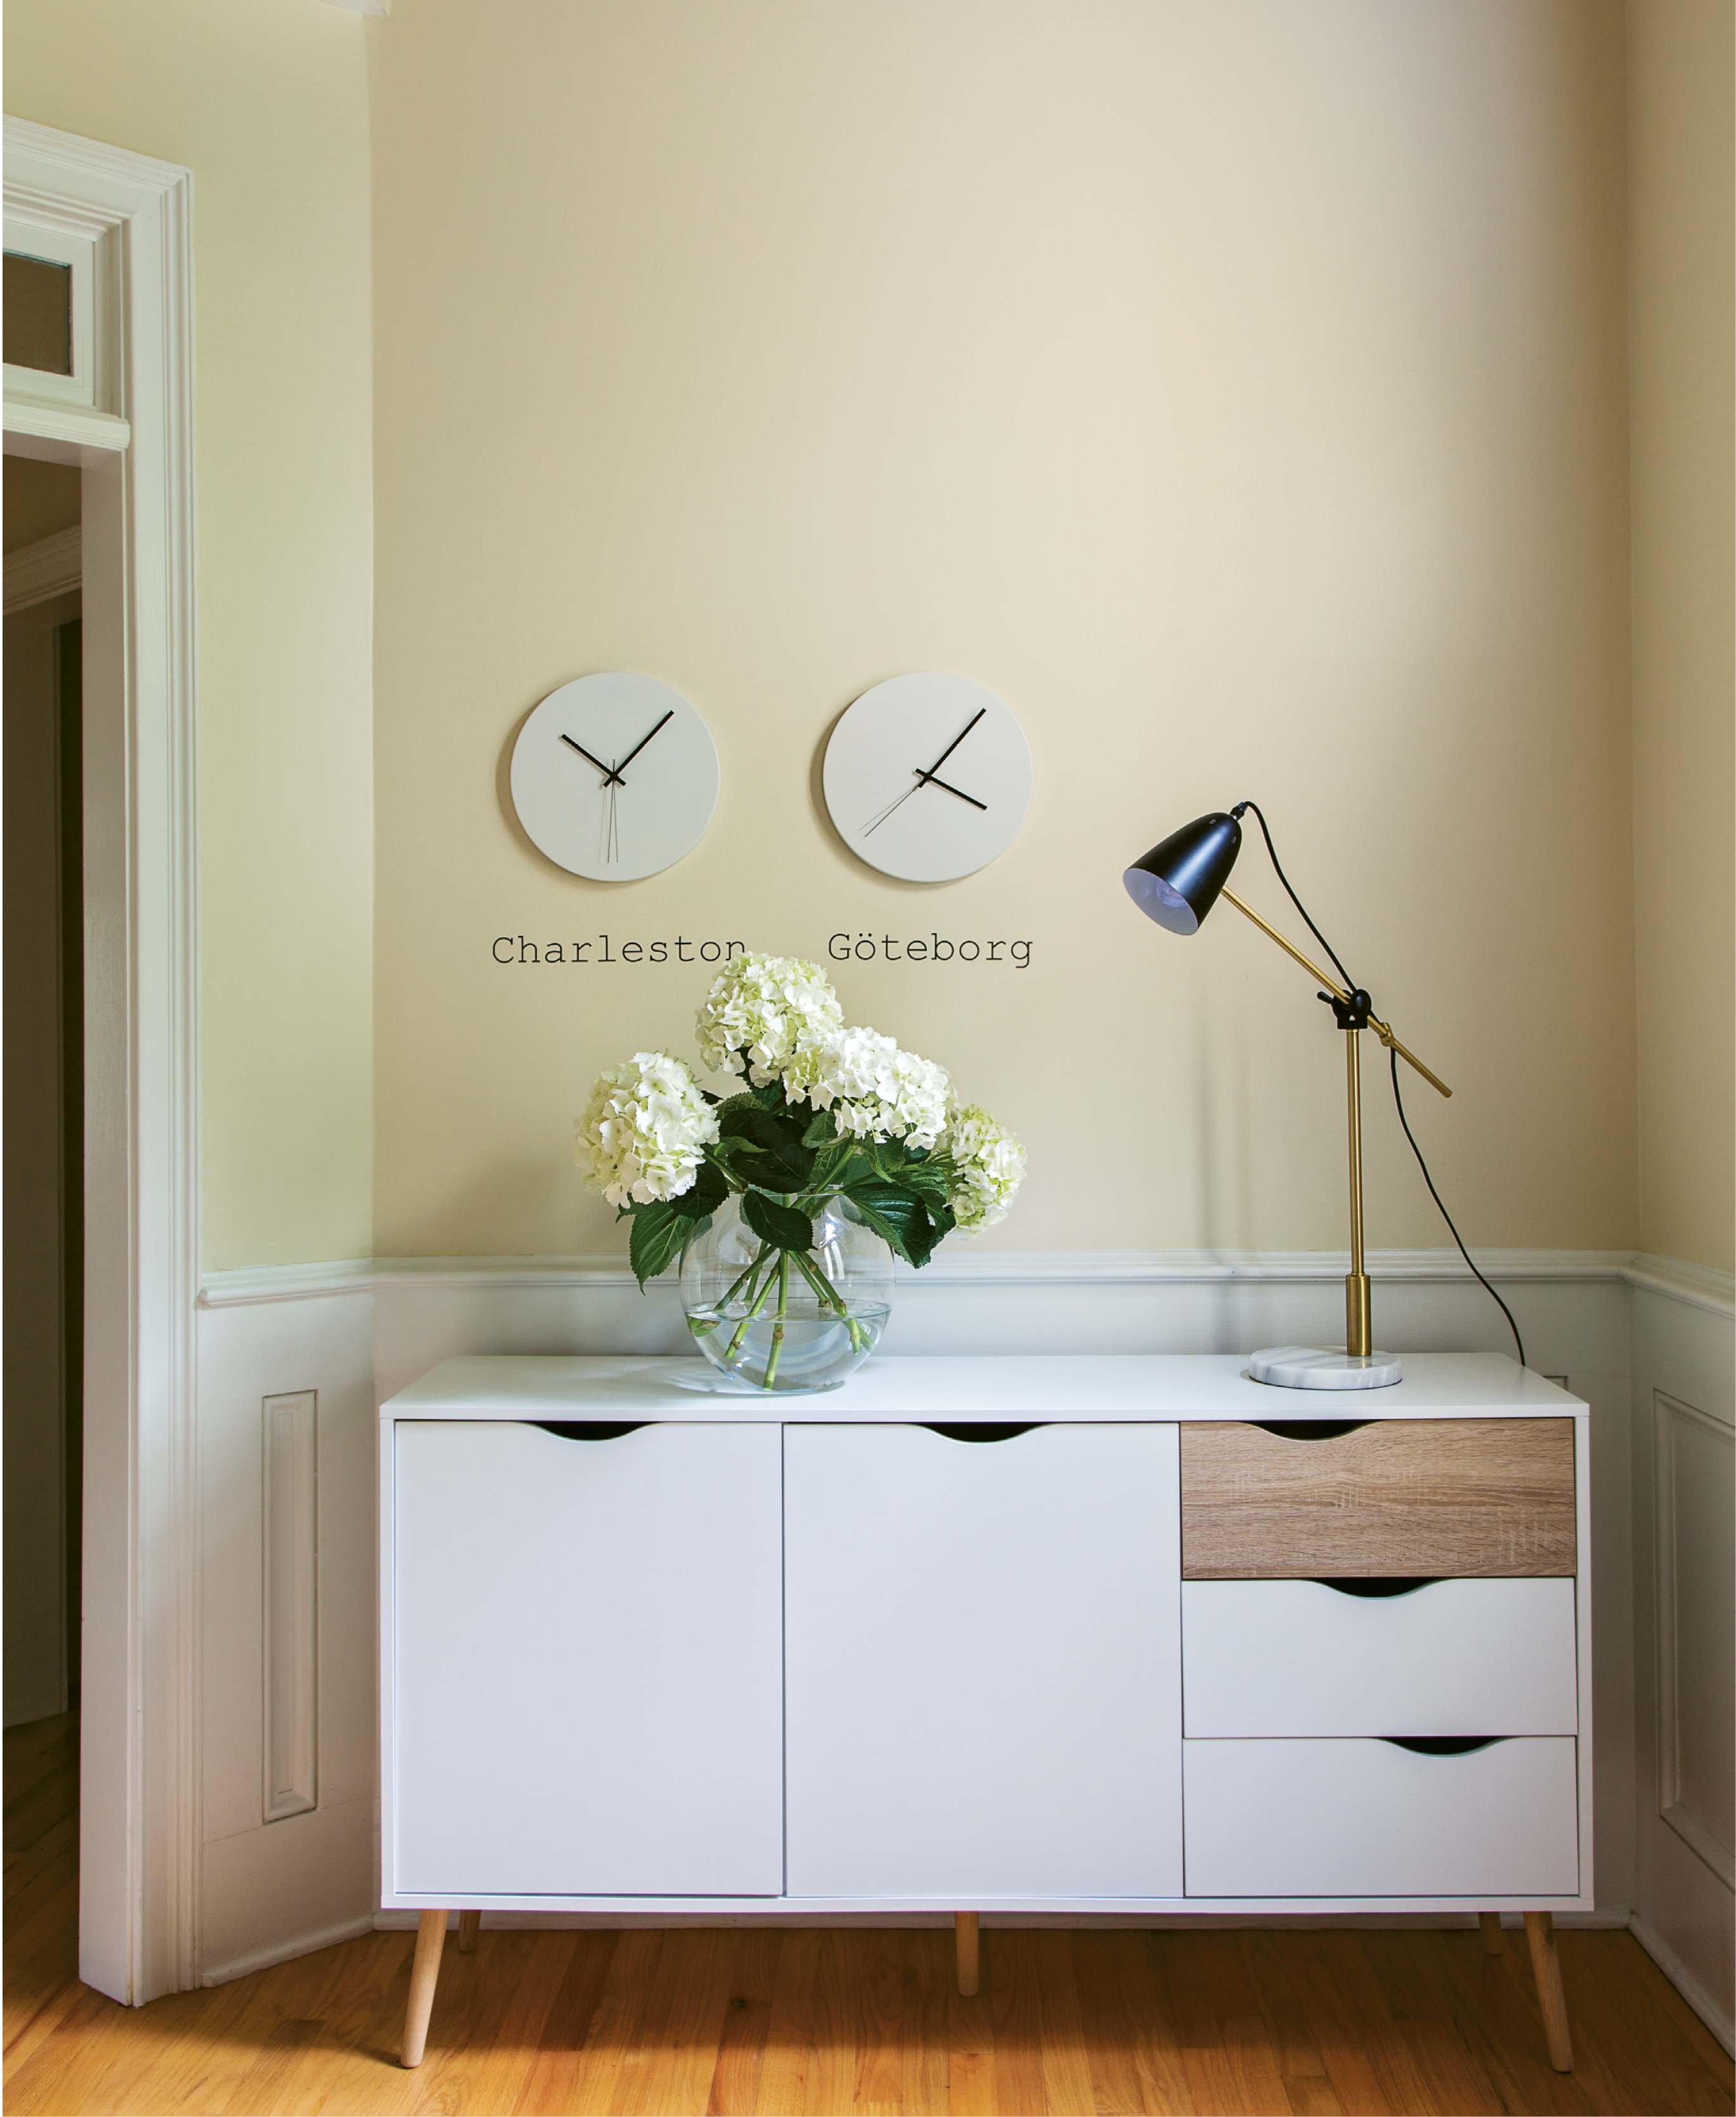 Nordic Track - Light and practical, Scandinavian design makes a visiting Swedish family's temporary abode feel like home.